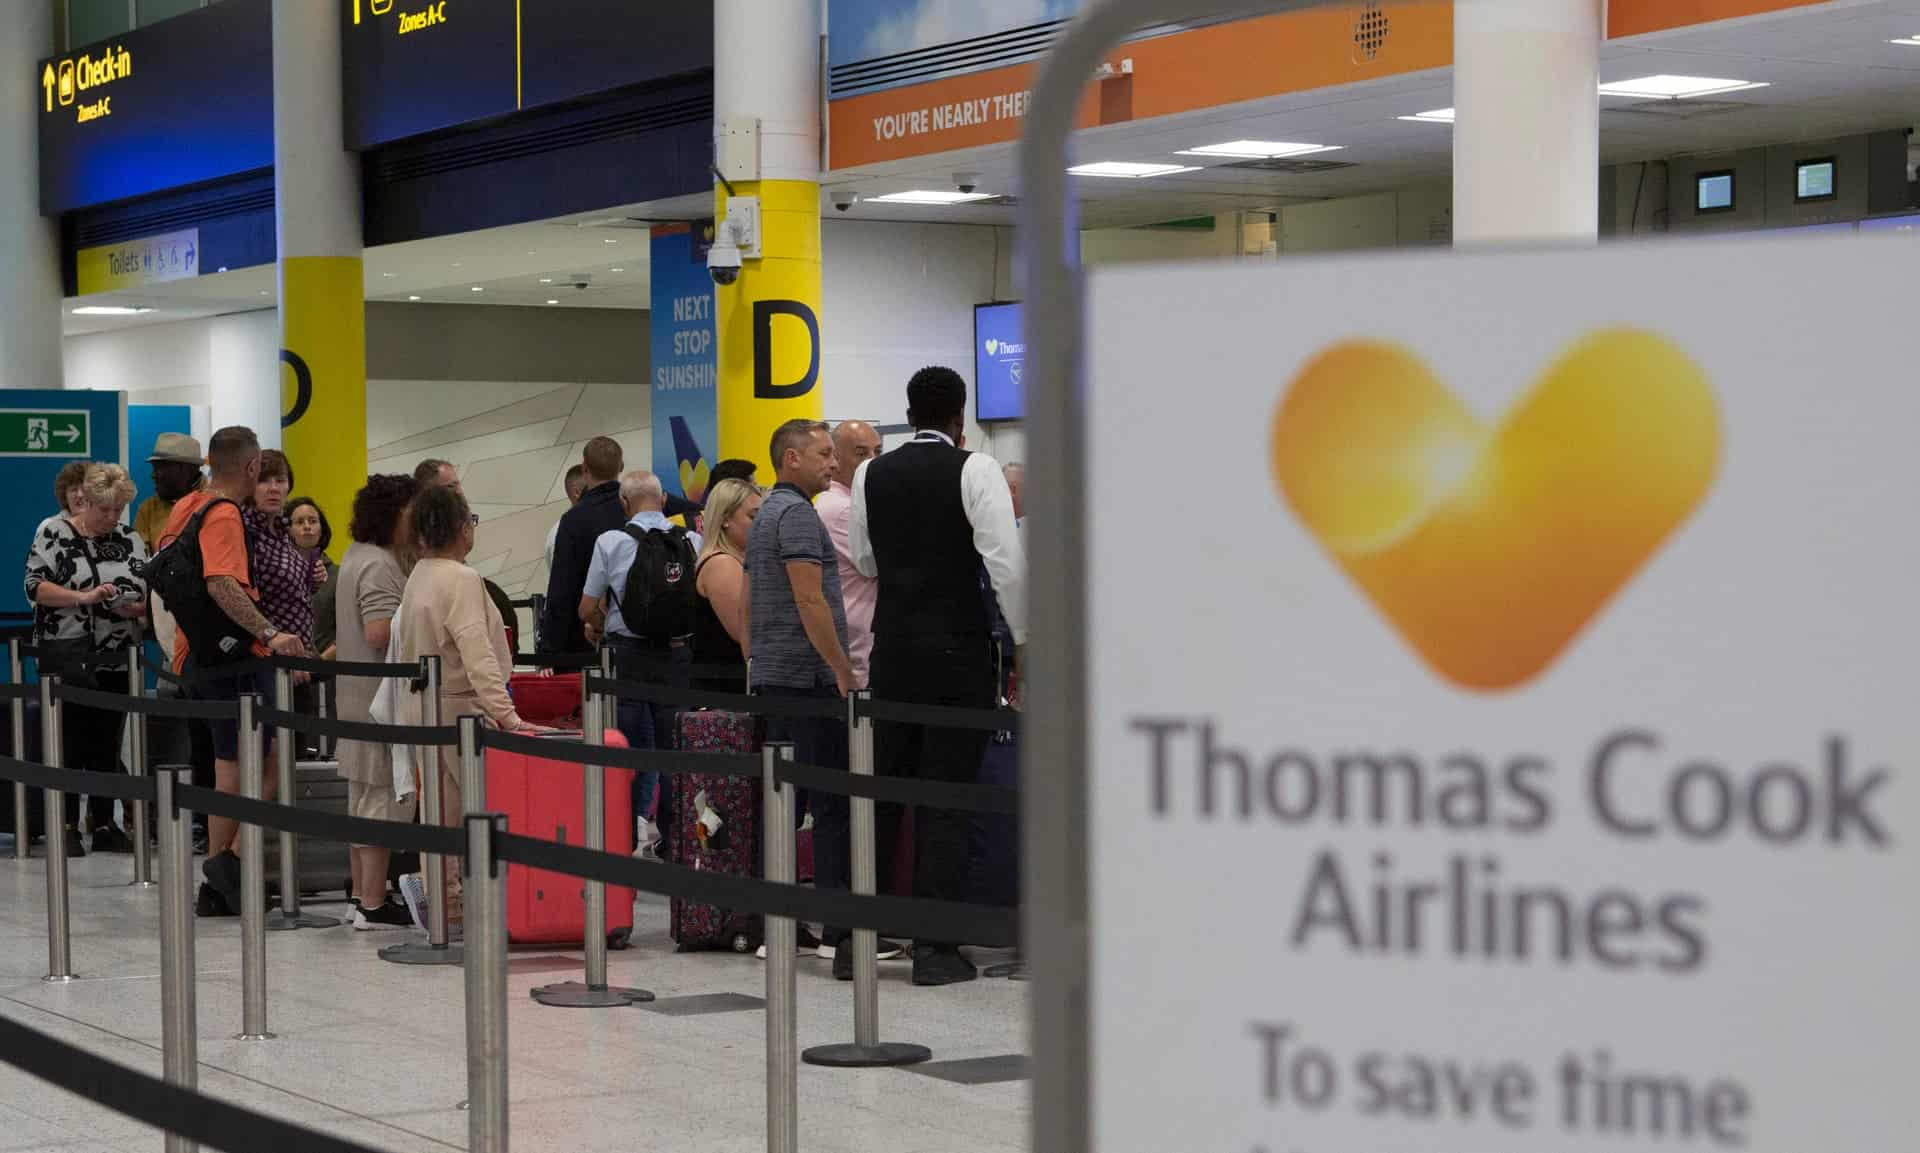 THOMAS COOK XR